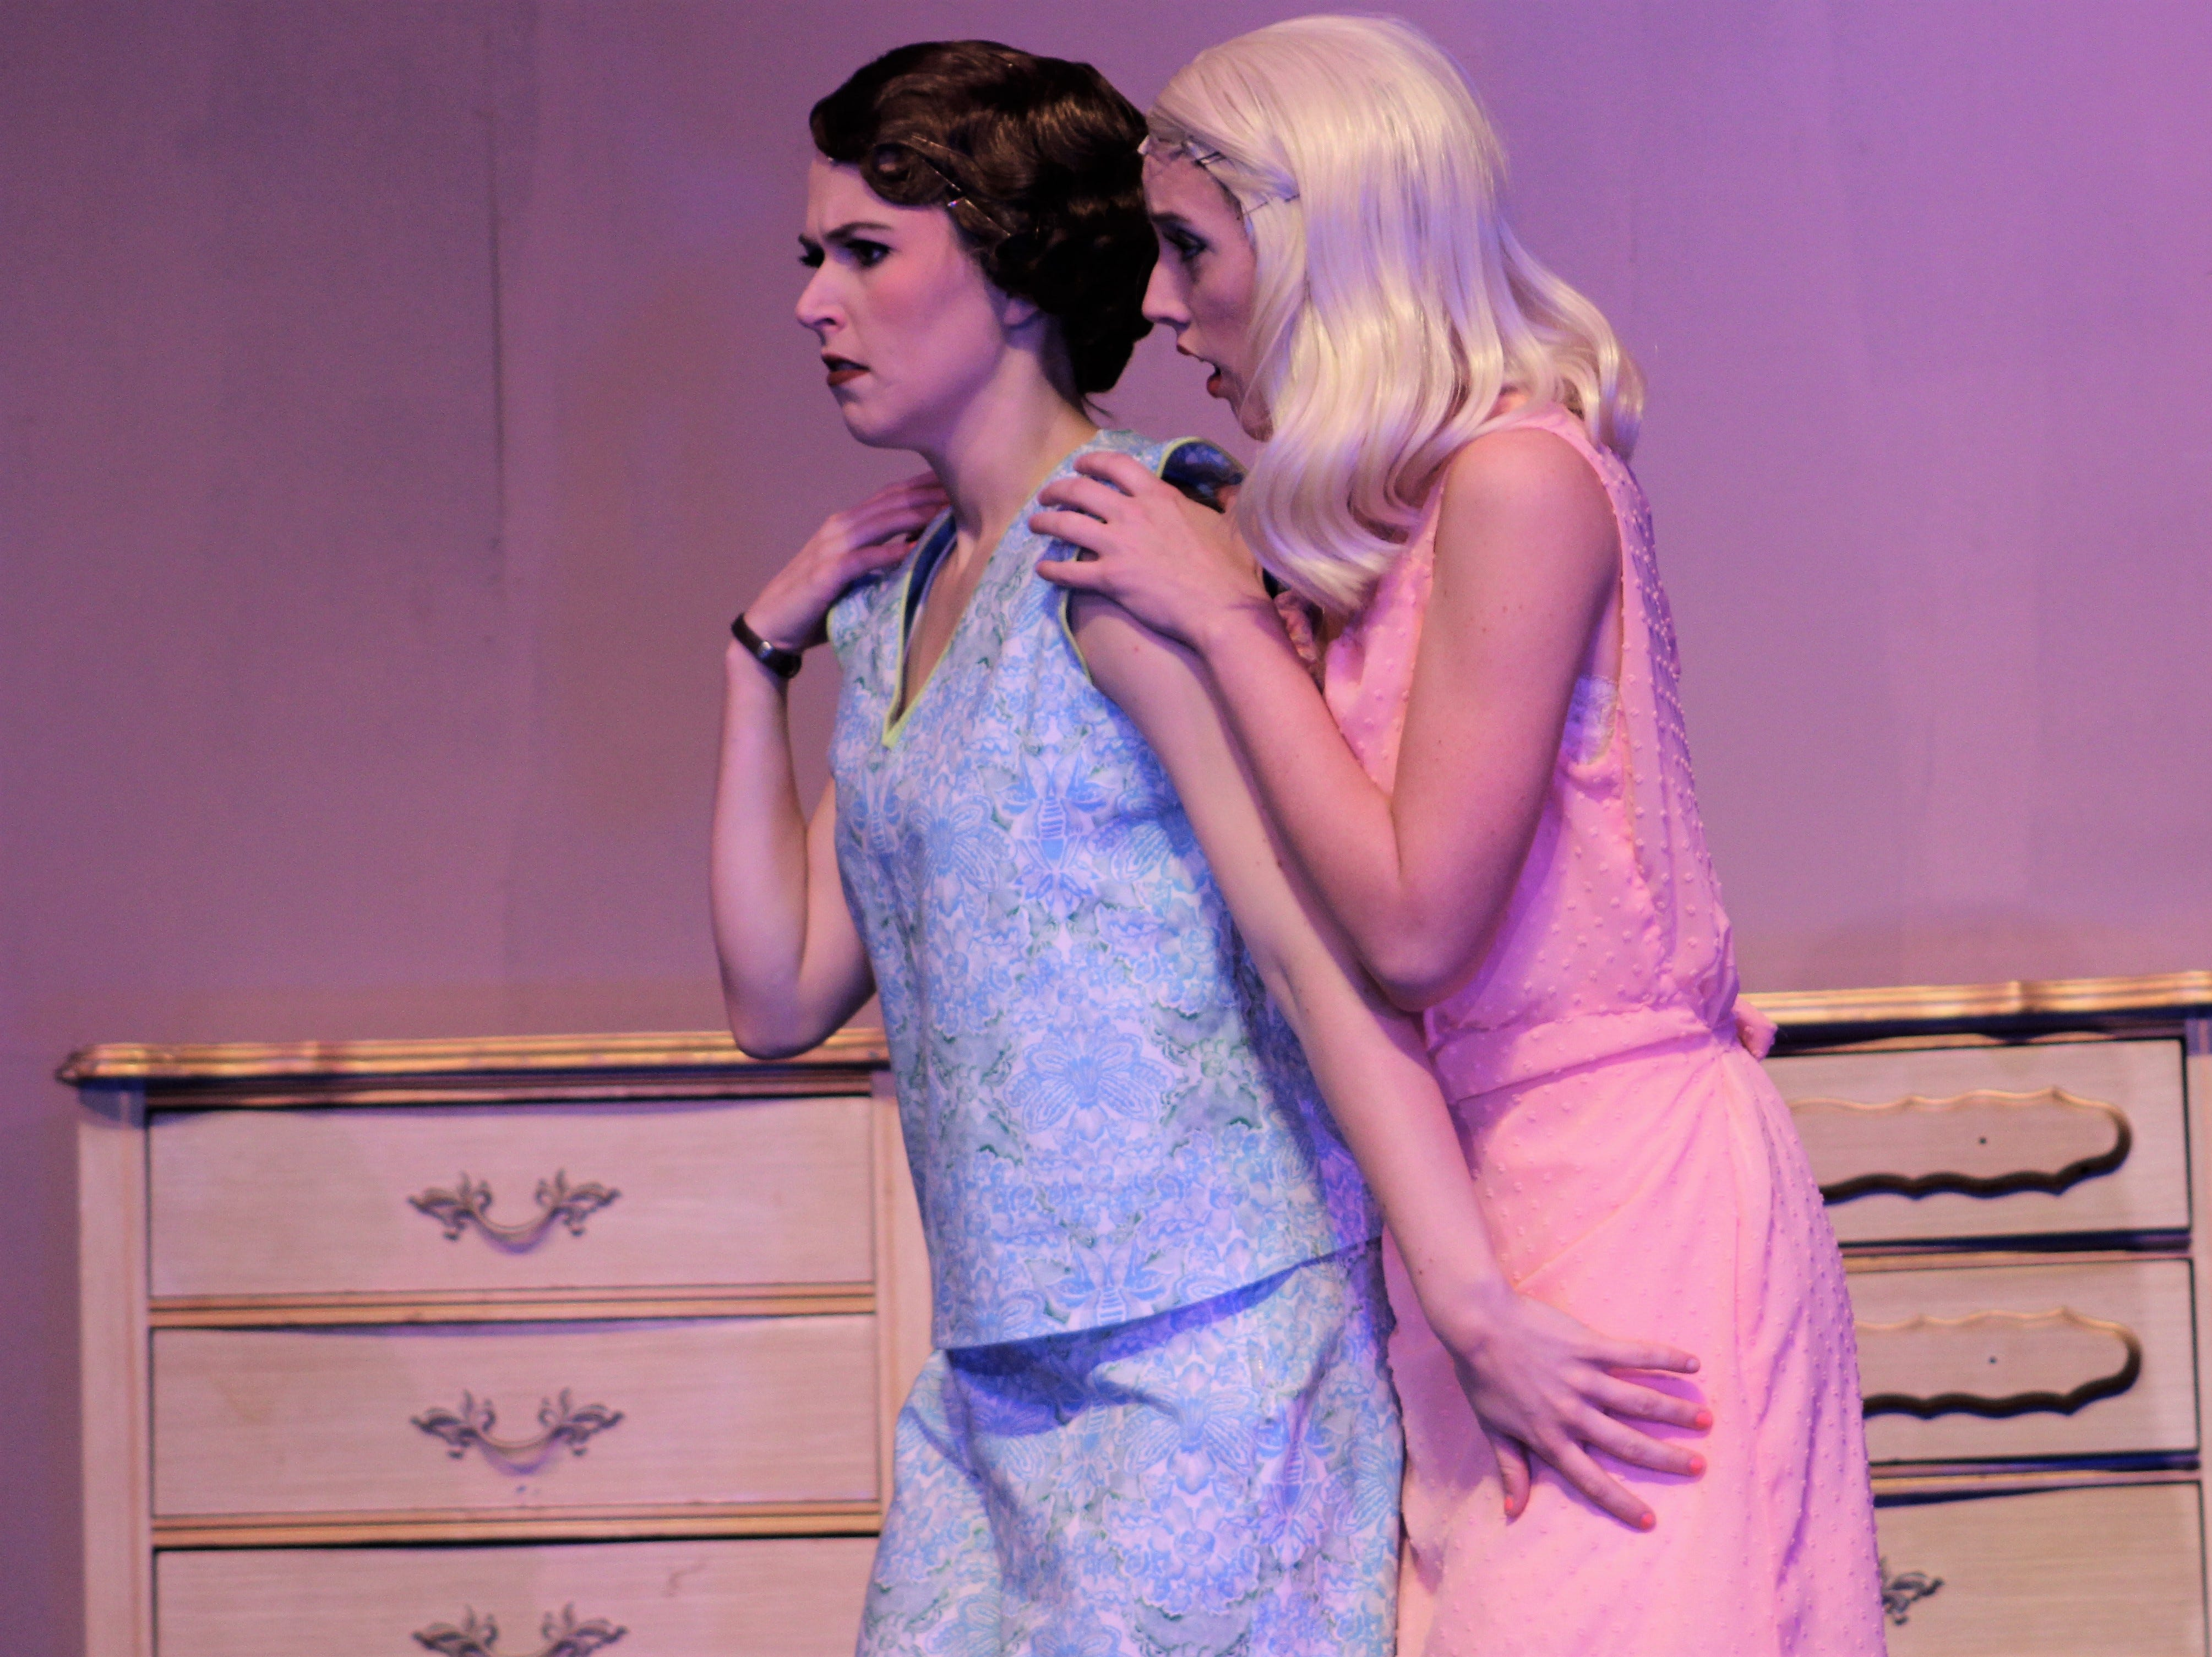 """Ruth (Payton Reeves, left) and her sister Eileen Sherwood (Helena Lynch) react to a man suddenly in their basement apartment in Greenwich Village in this rehearsal scene from """"Wonderful Town,"""" Abilene Christian's 2018 homecoming musical"""